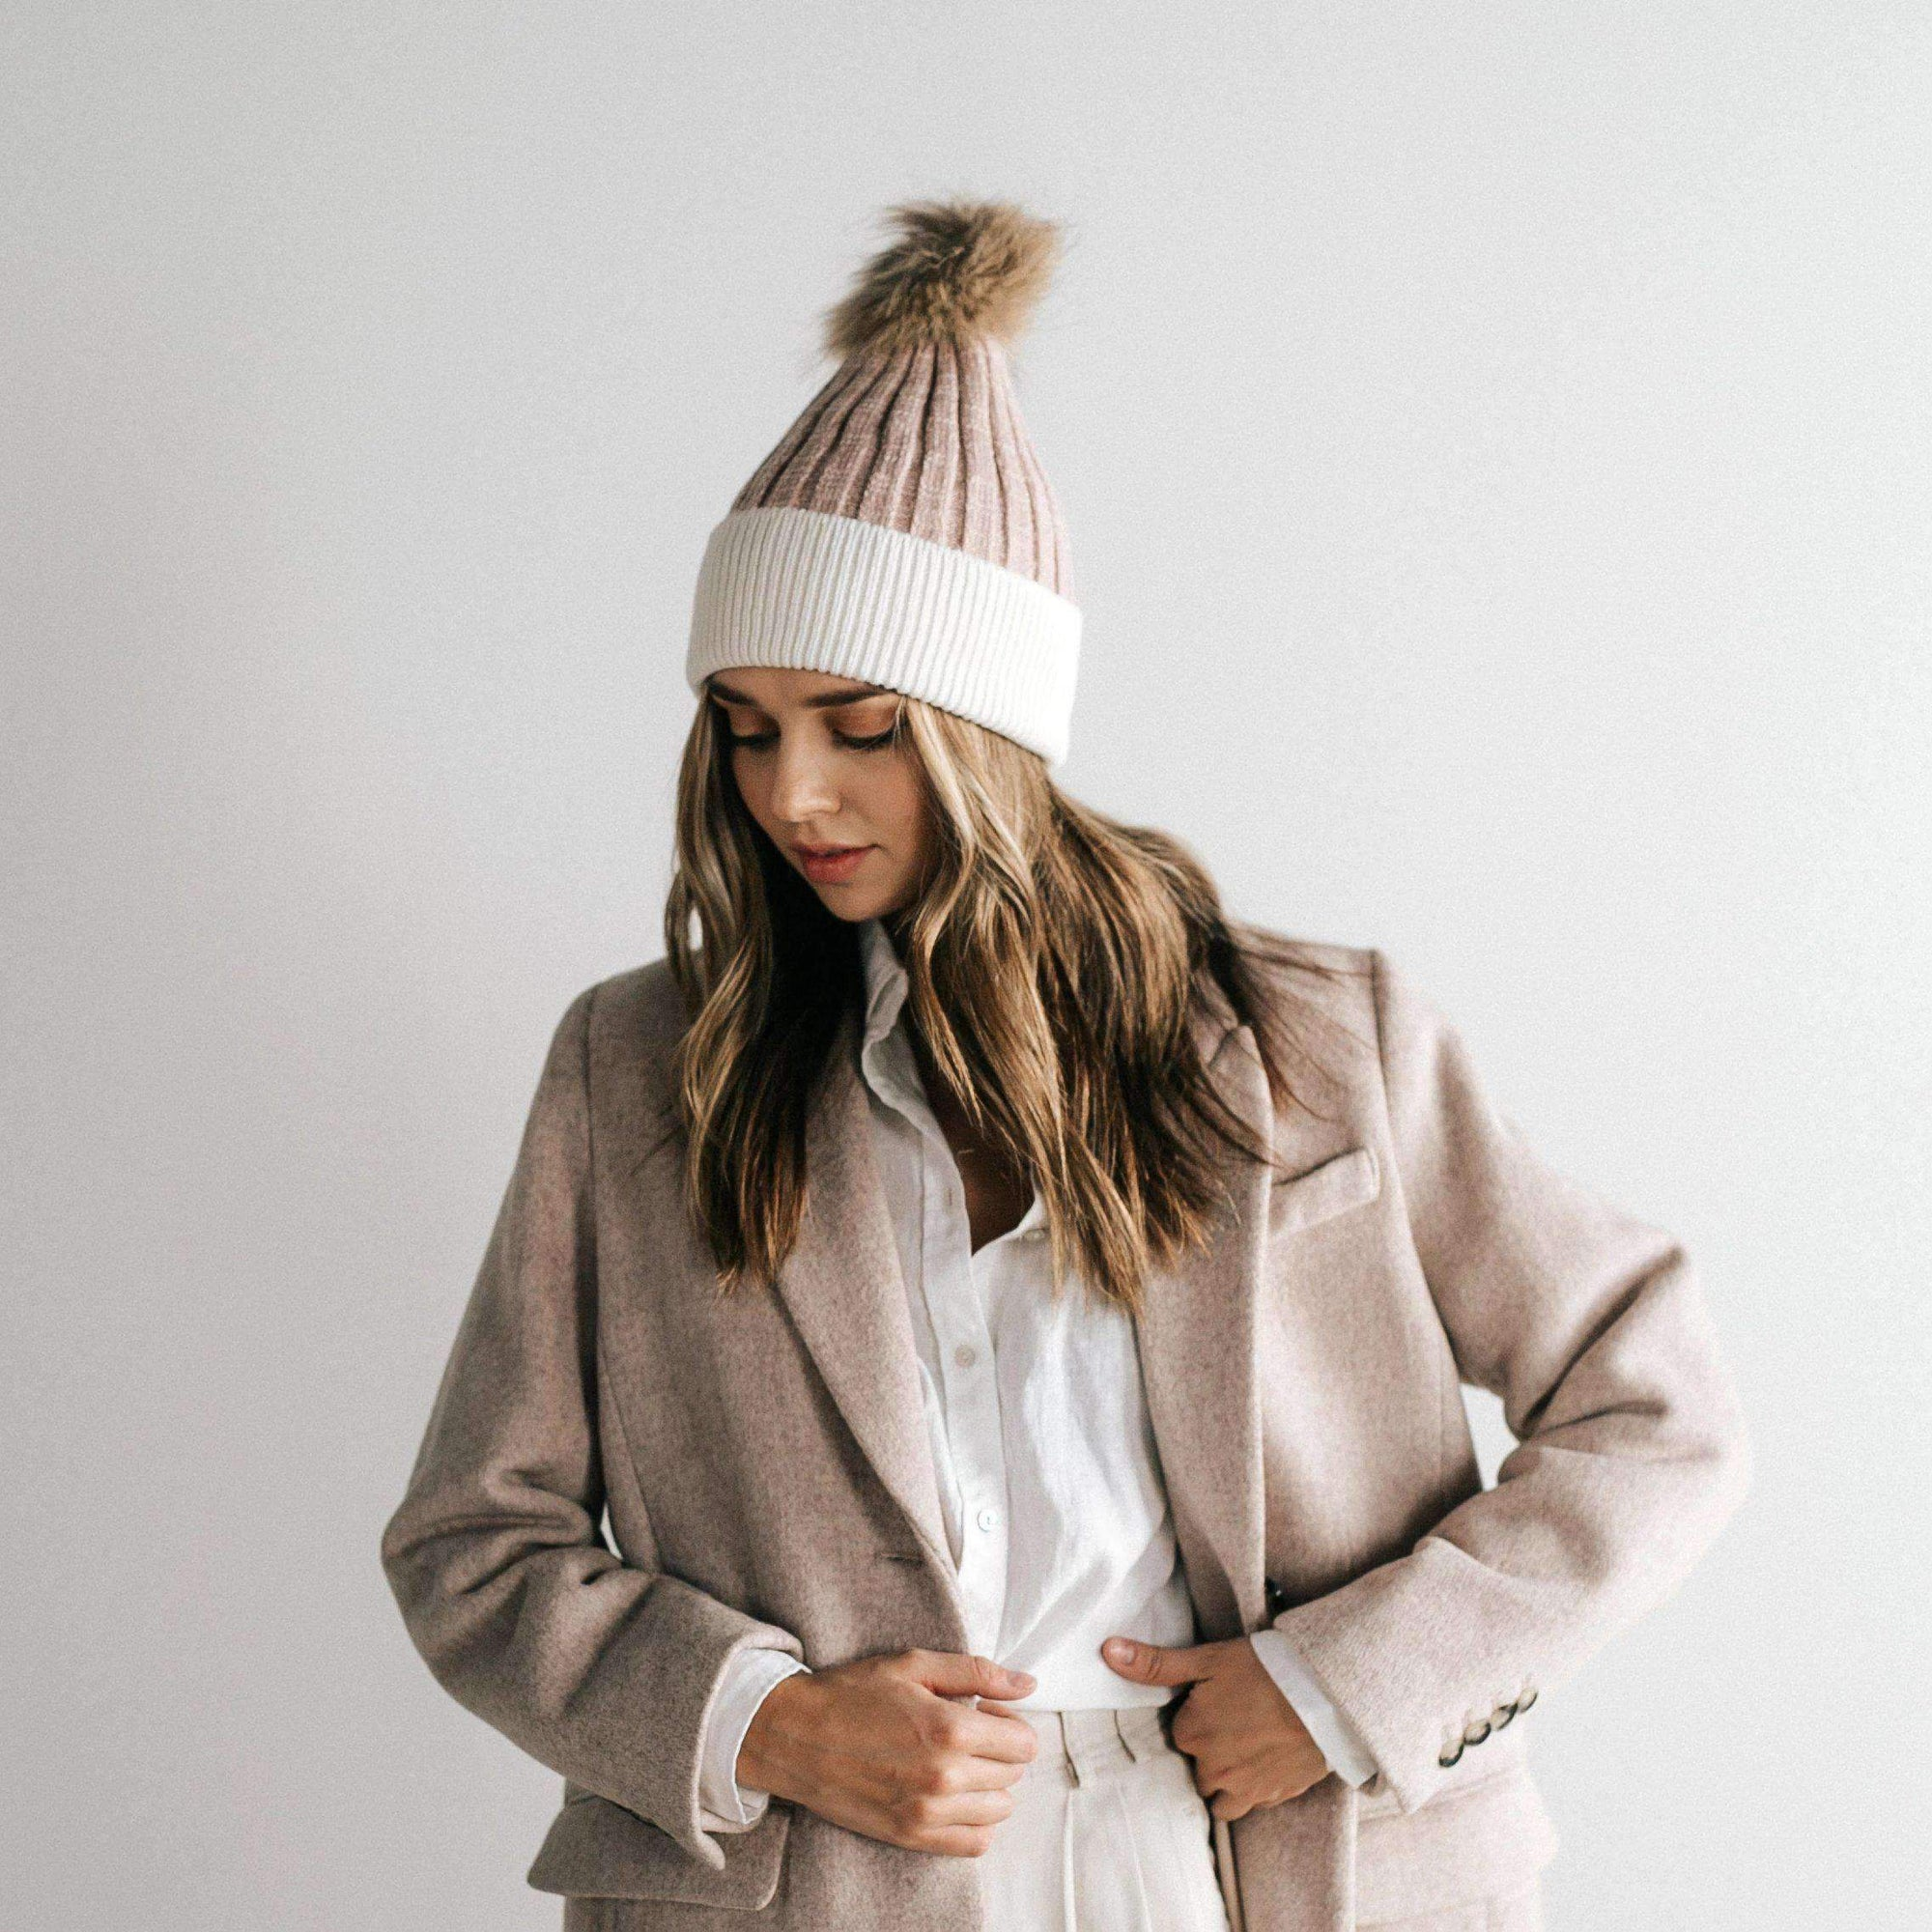 GIGI PIP Hats for Women- Dann Beanie - Blush and White-Beanie